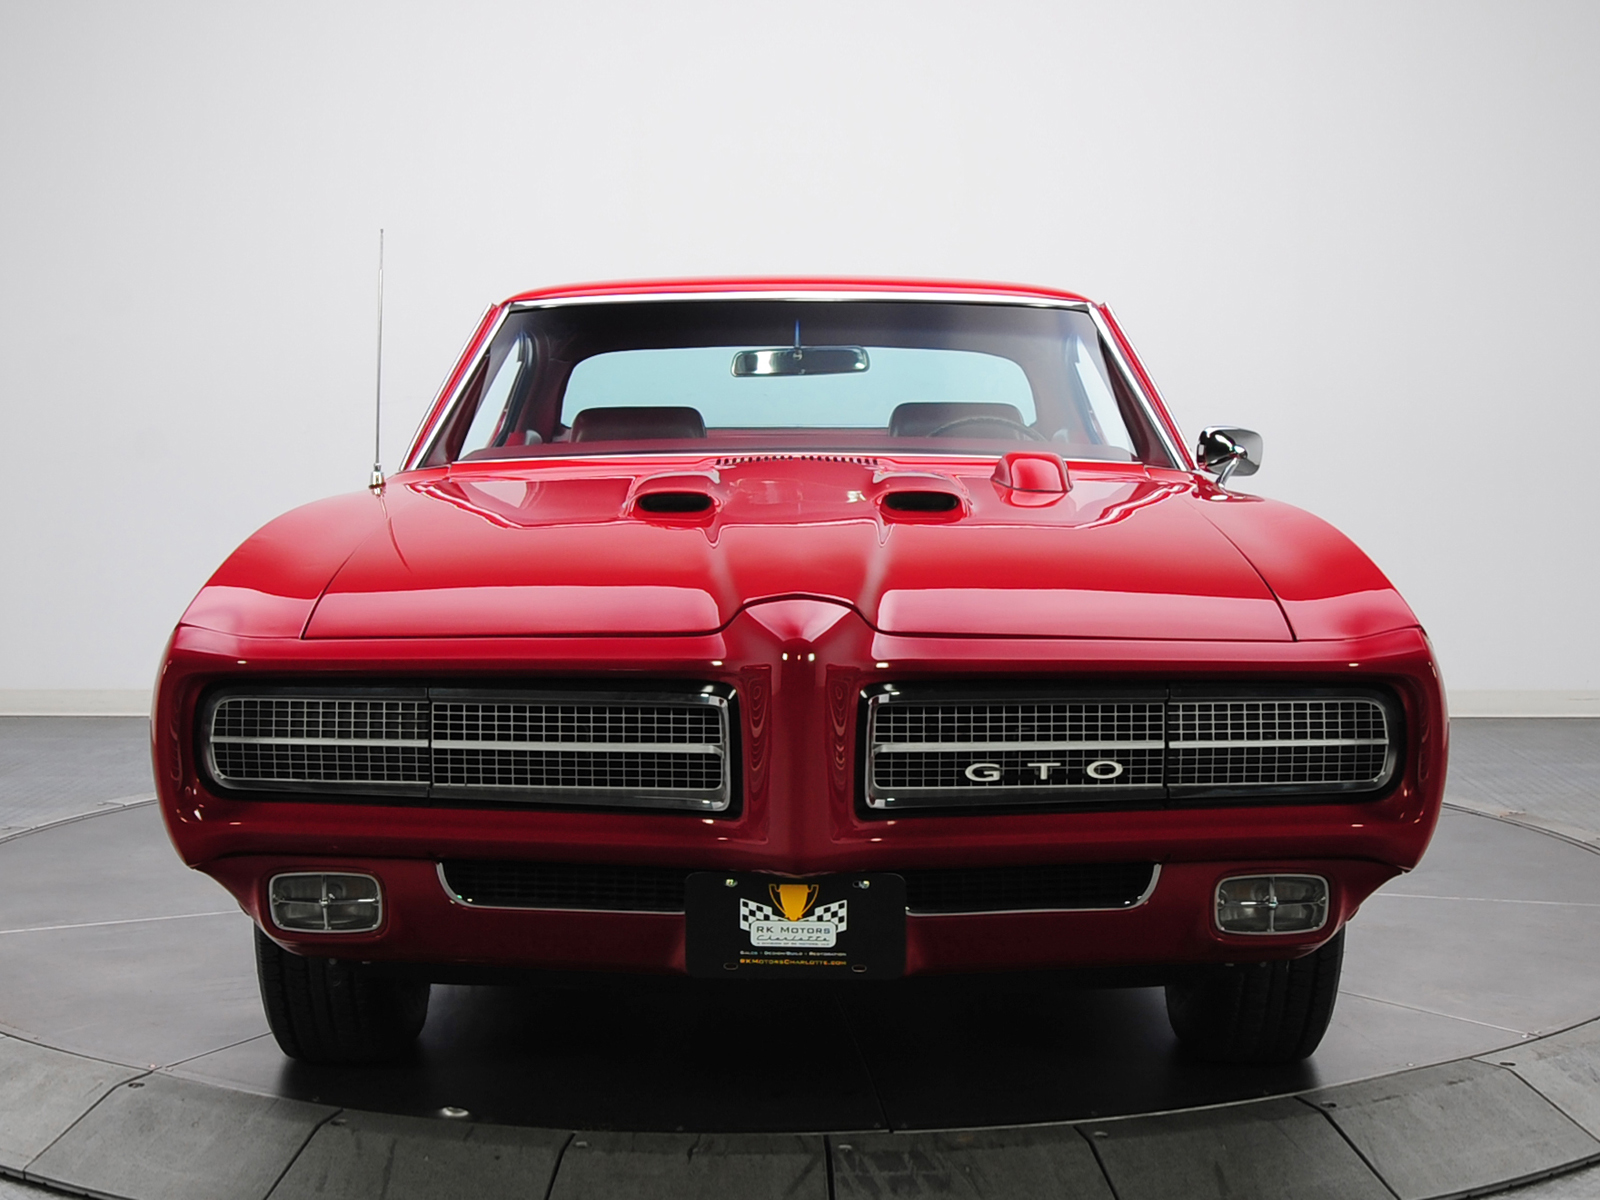 Pontiac GTO Hardtop Coupe photo 93542